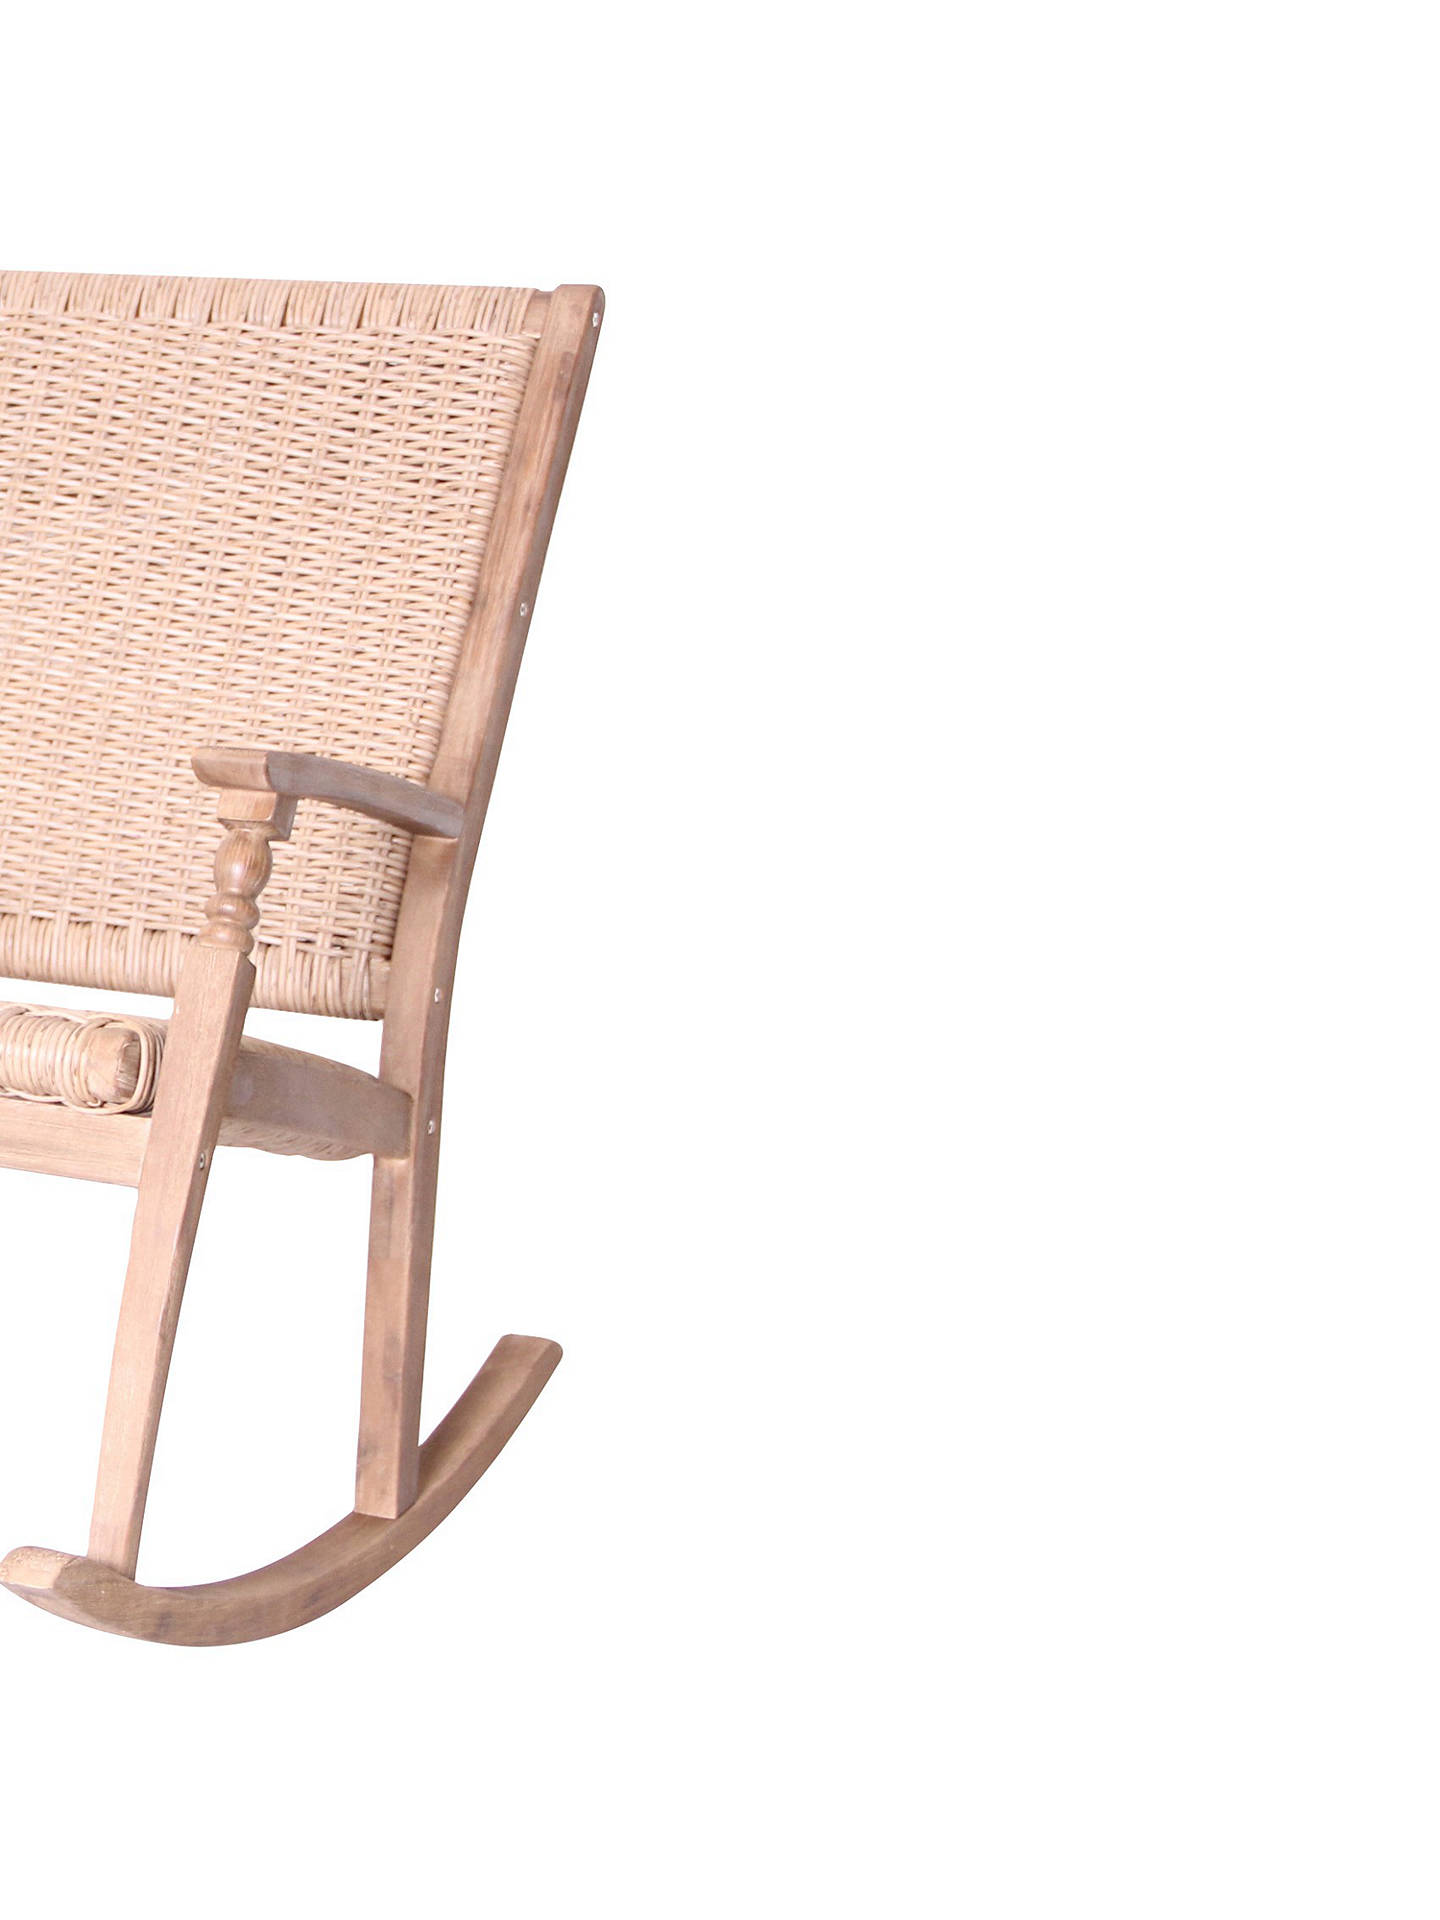 BuyLG Outdoor Hanoi Wood & Weave 2-Seat Rocking Bench, FSC-certified (Acacia) Online at johnlewis.com